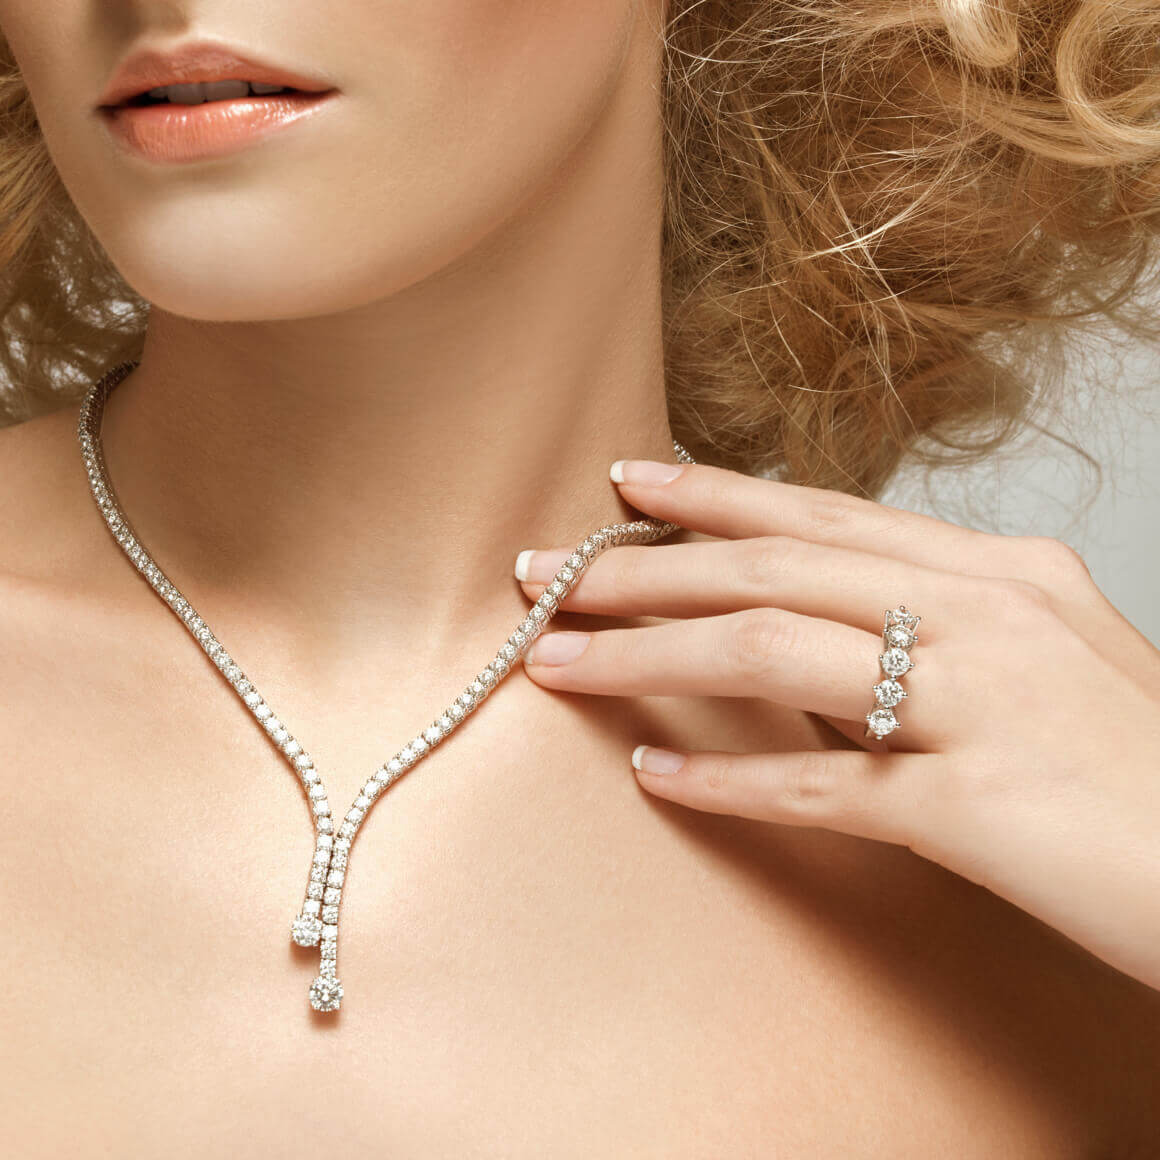 Luxury Jewellery & Watches for Her